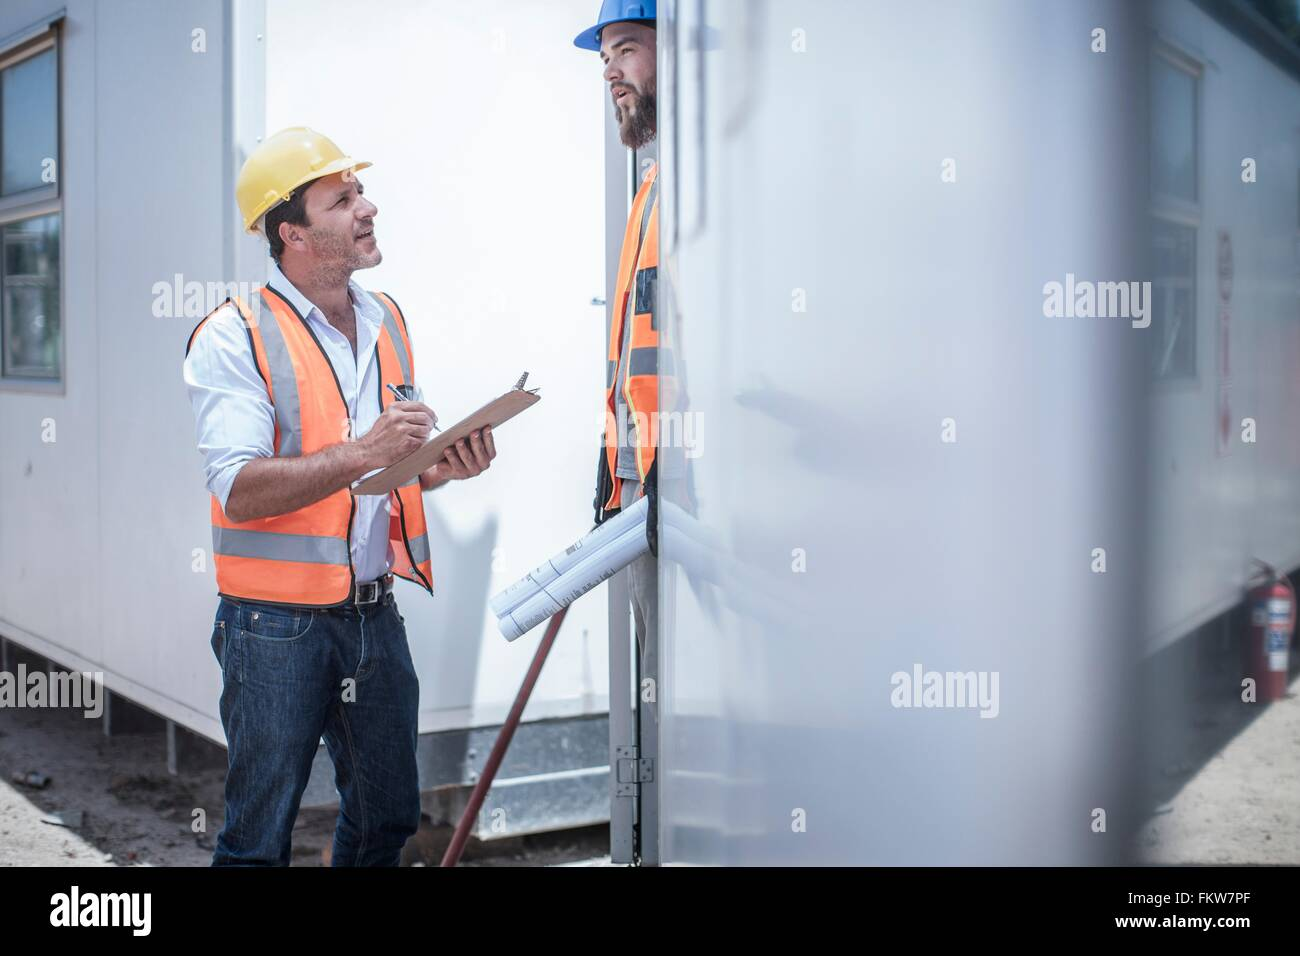 Construction worker talking to foreman from doorway of construction cabin - Stock Image